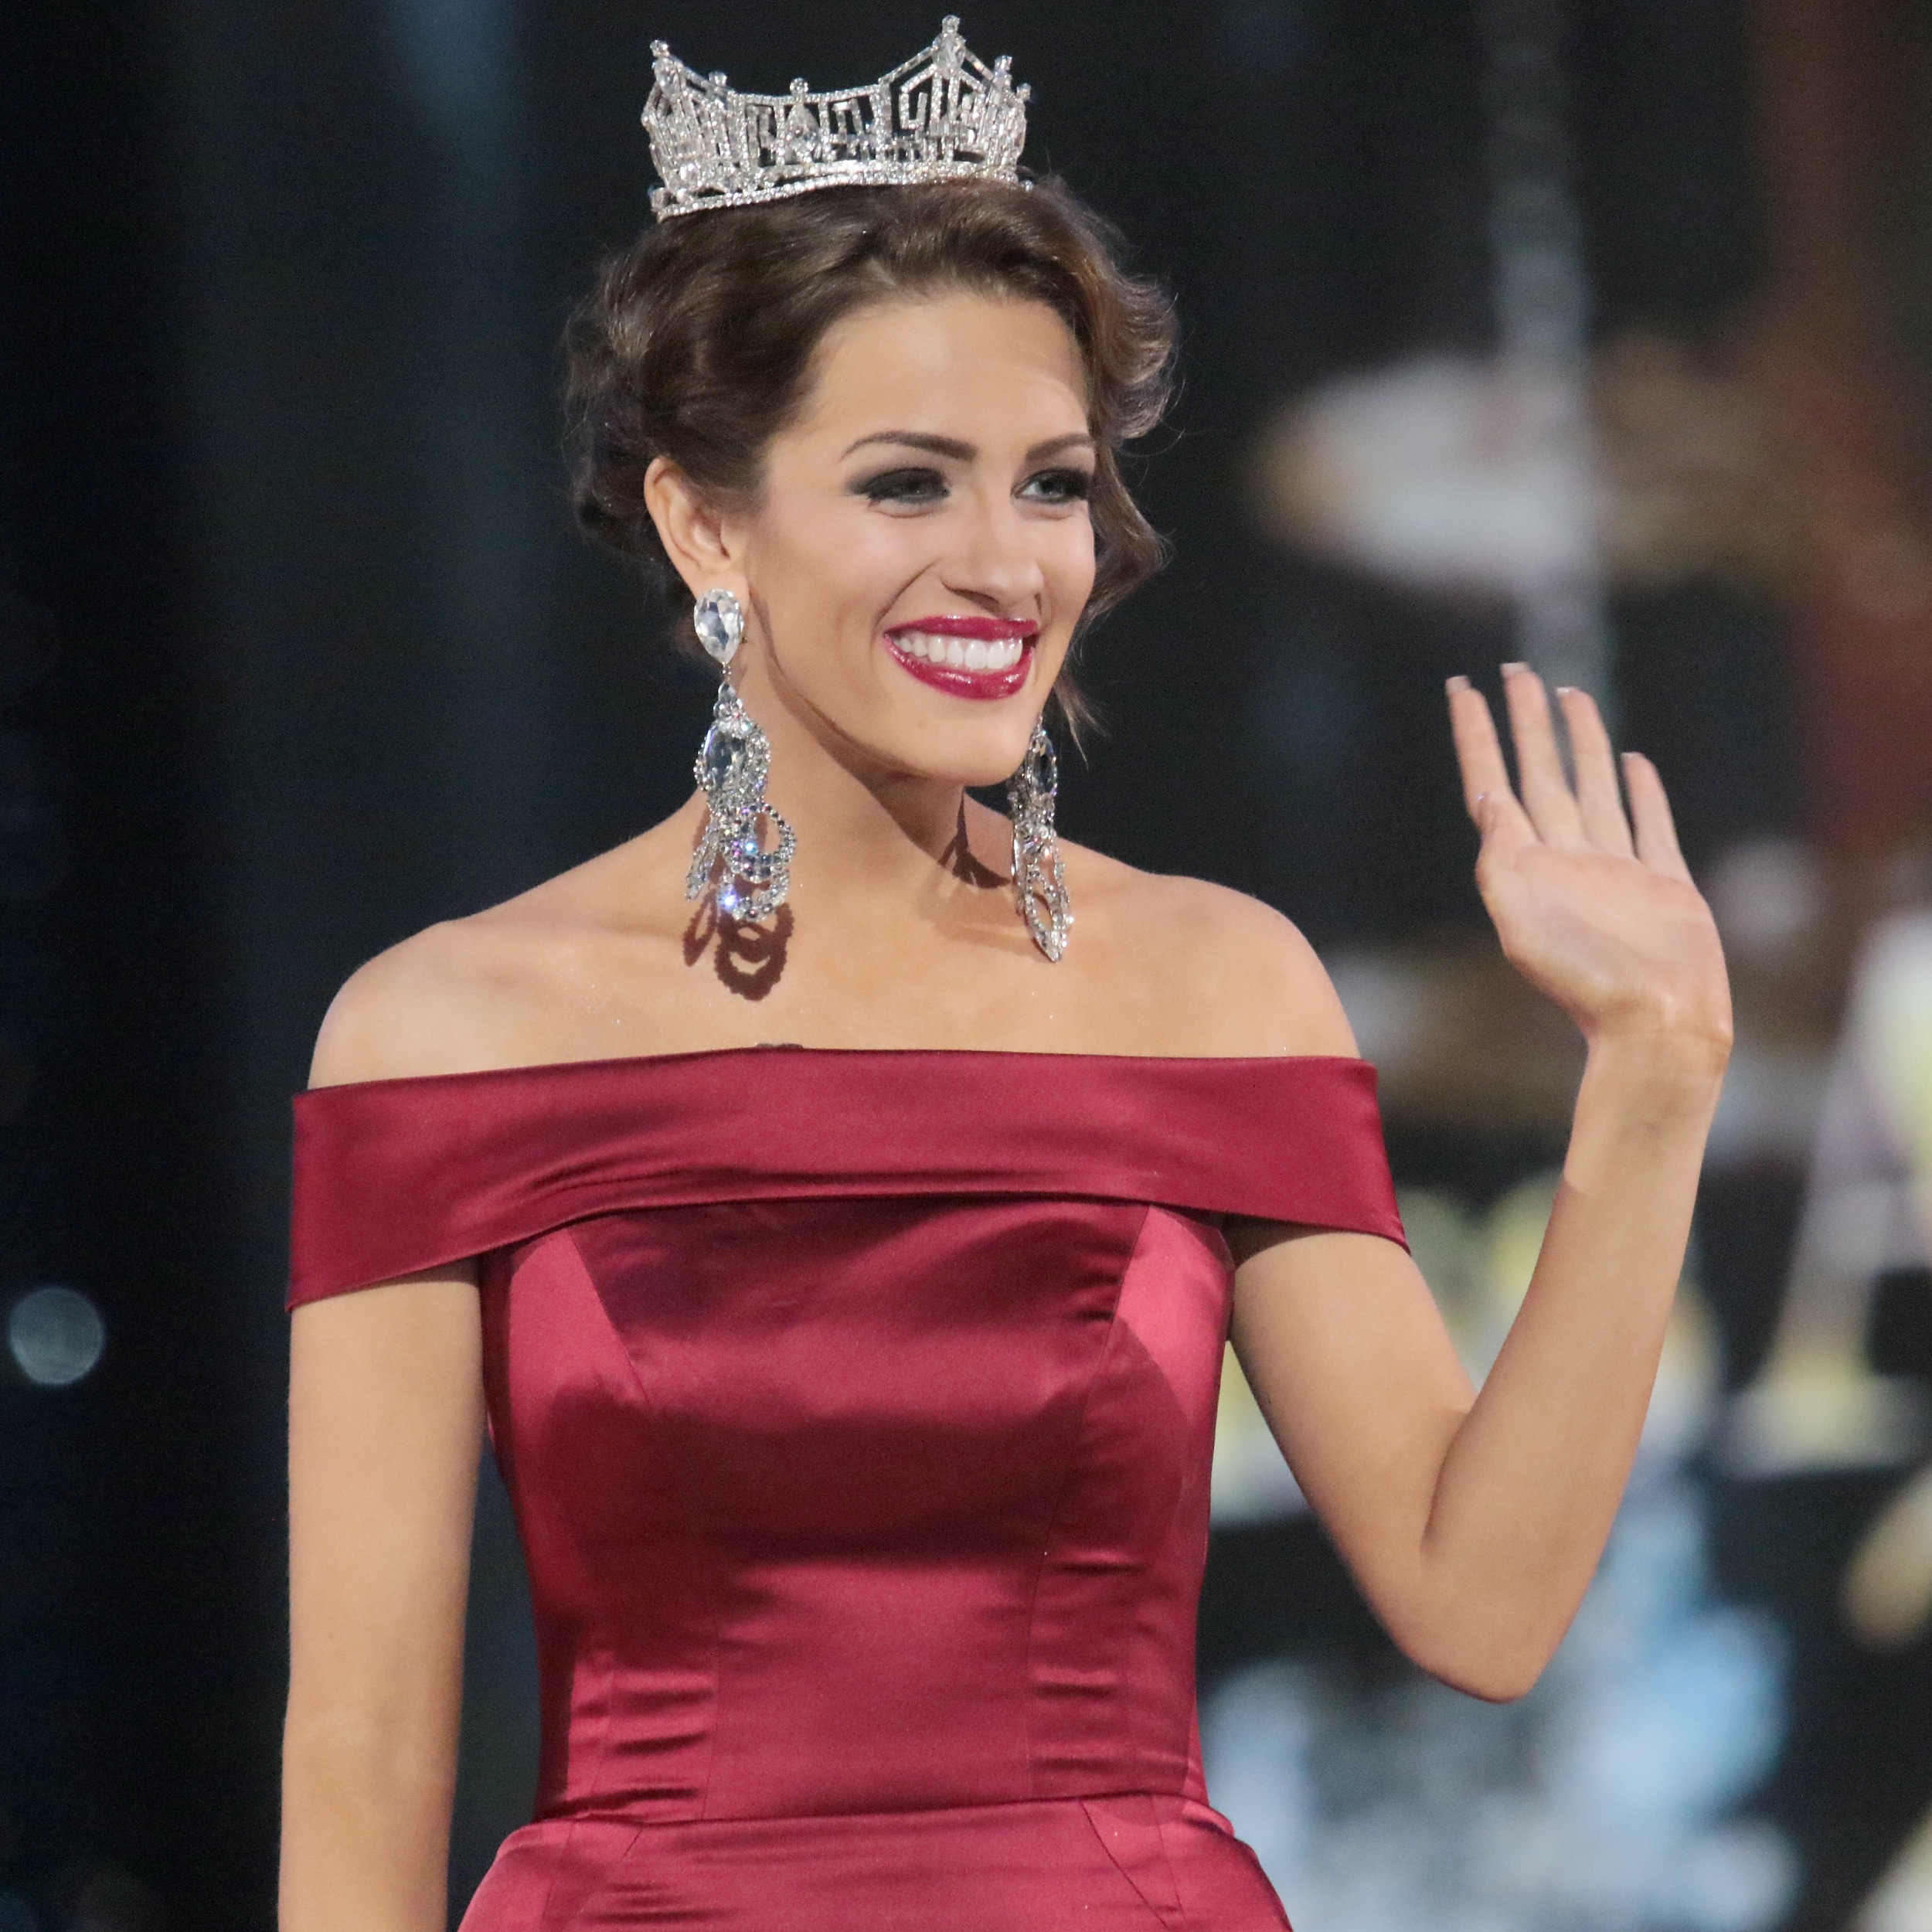 Miss America 2016 Betty Cantrell is Engaged! - Life & Style